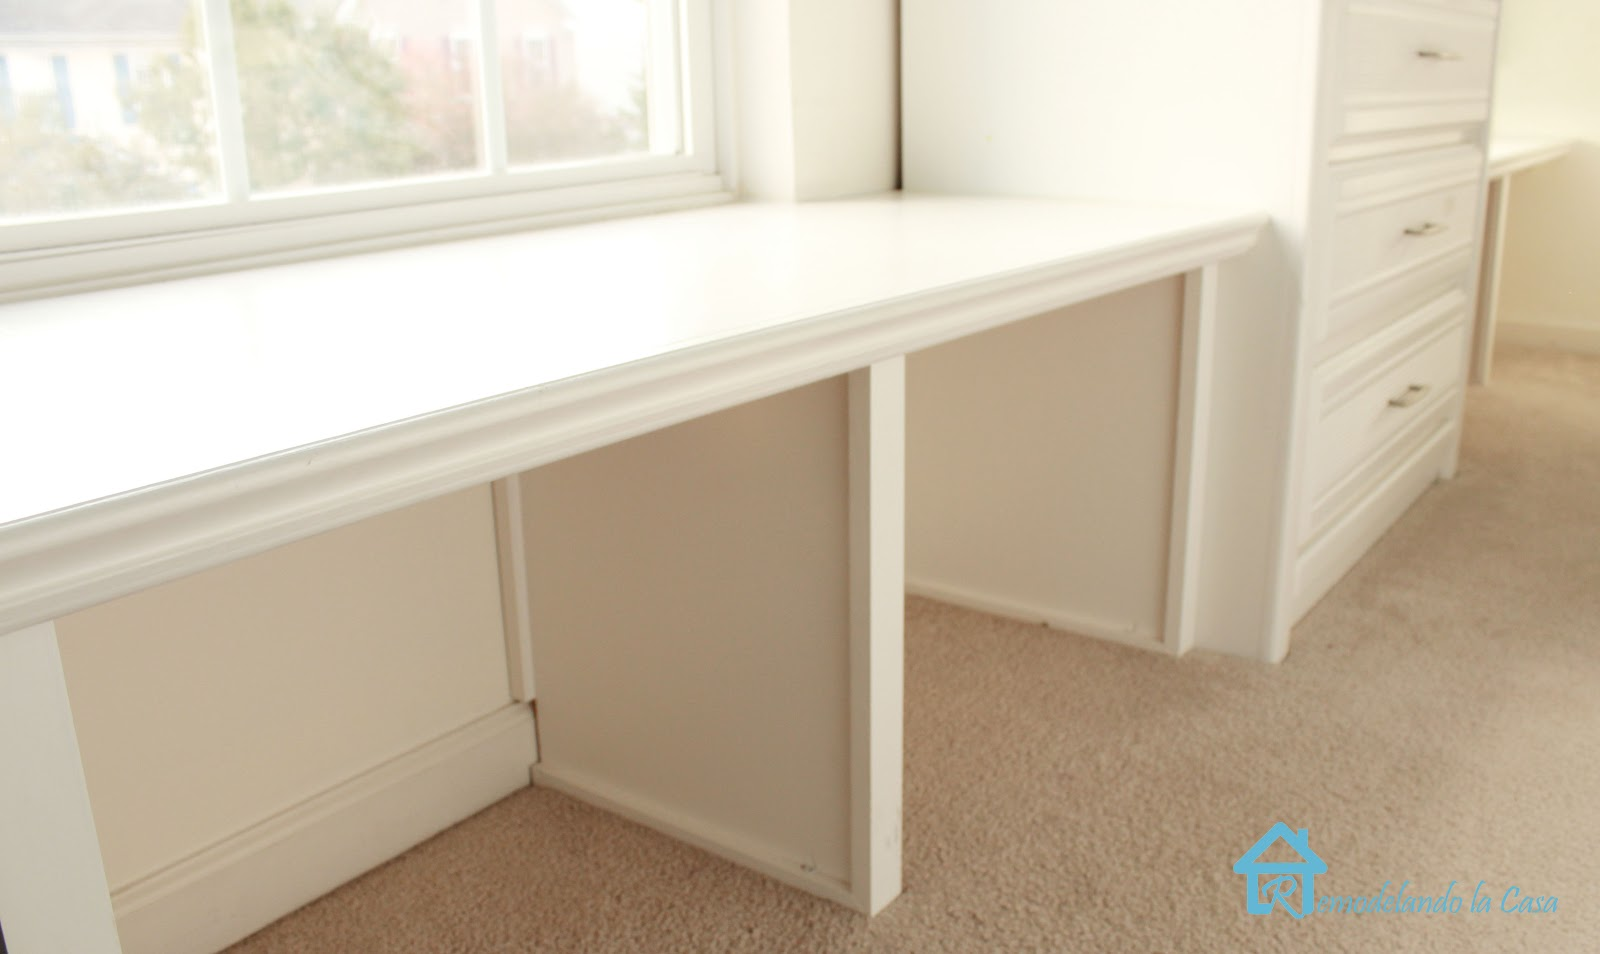 Remodelando La Casa Diy Window Bench